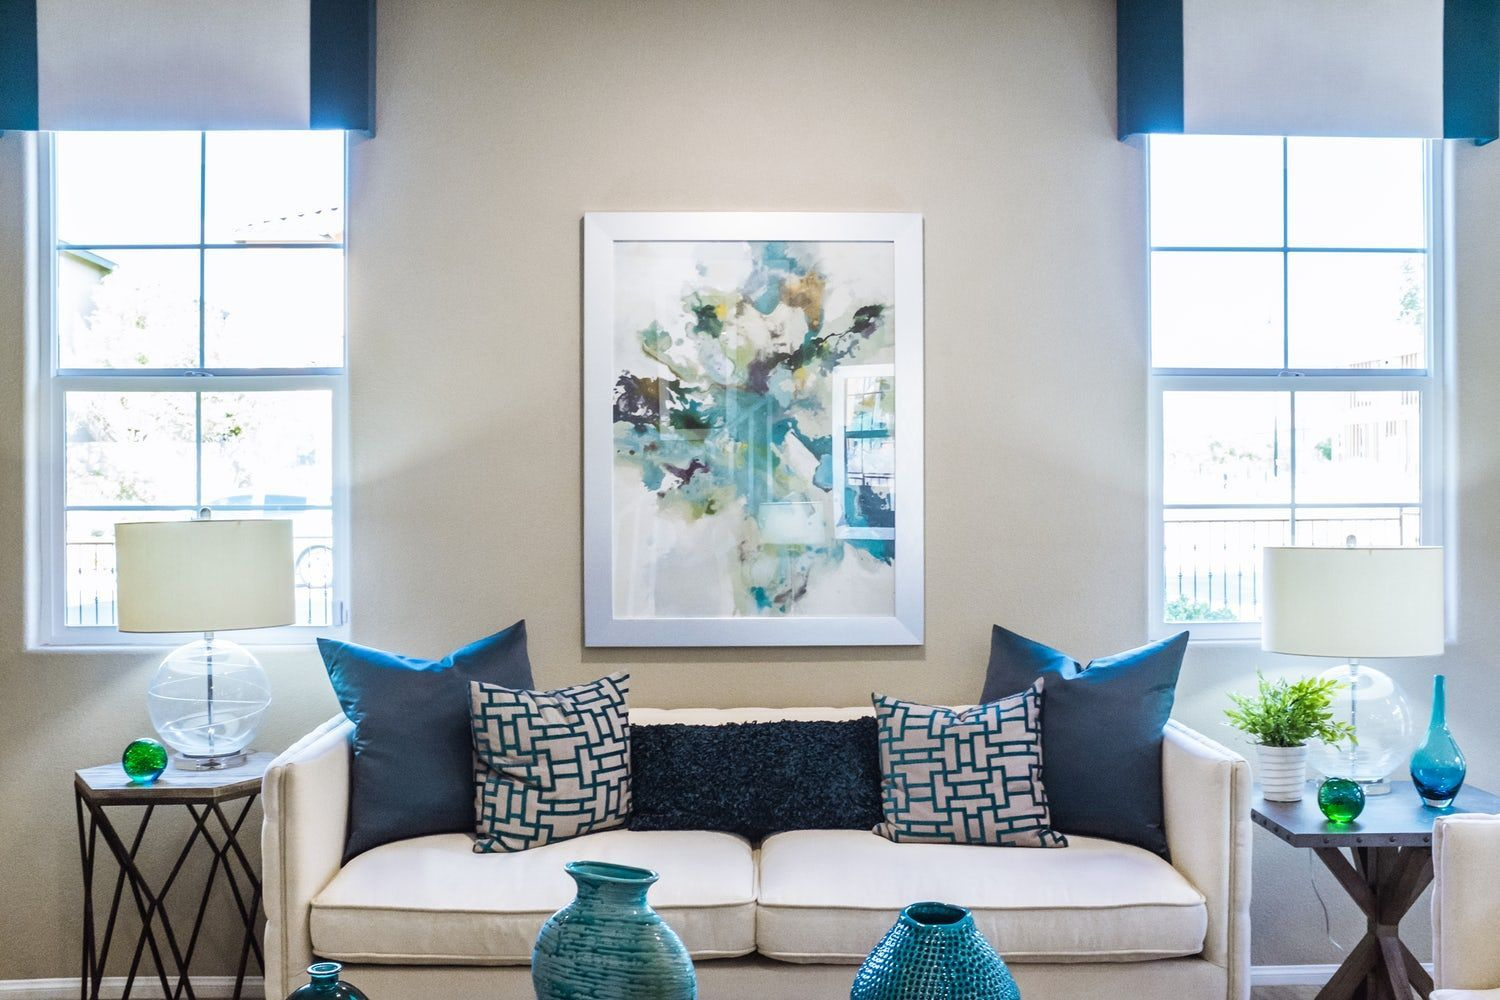 Want to enjoy peace? Add a calming effect to your living room with ...